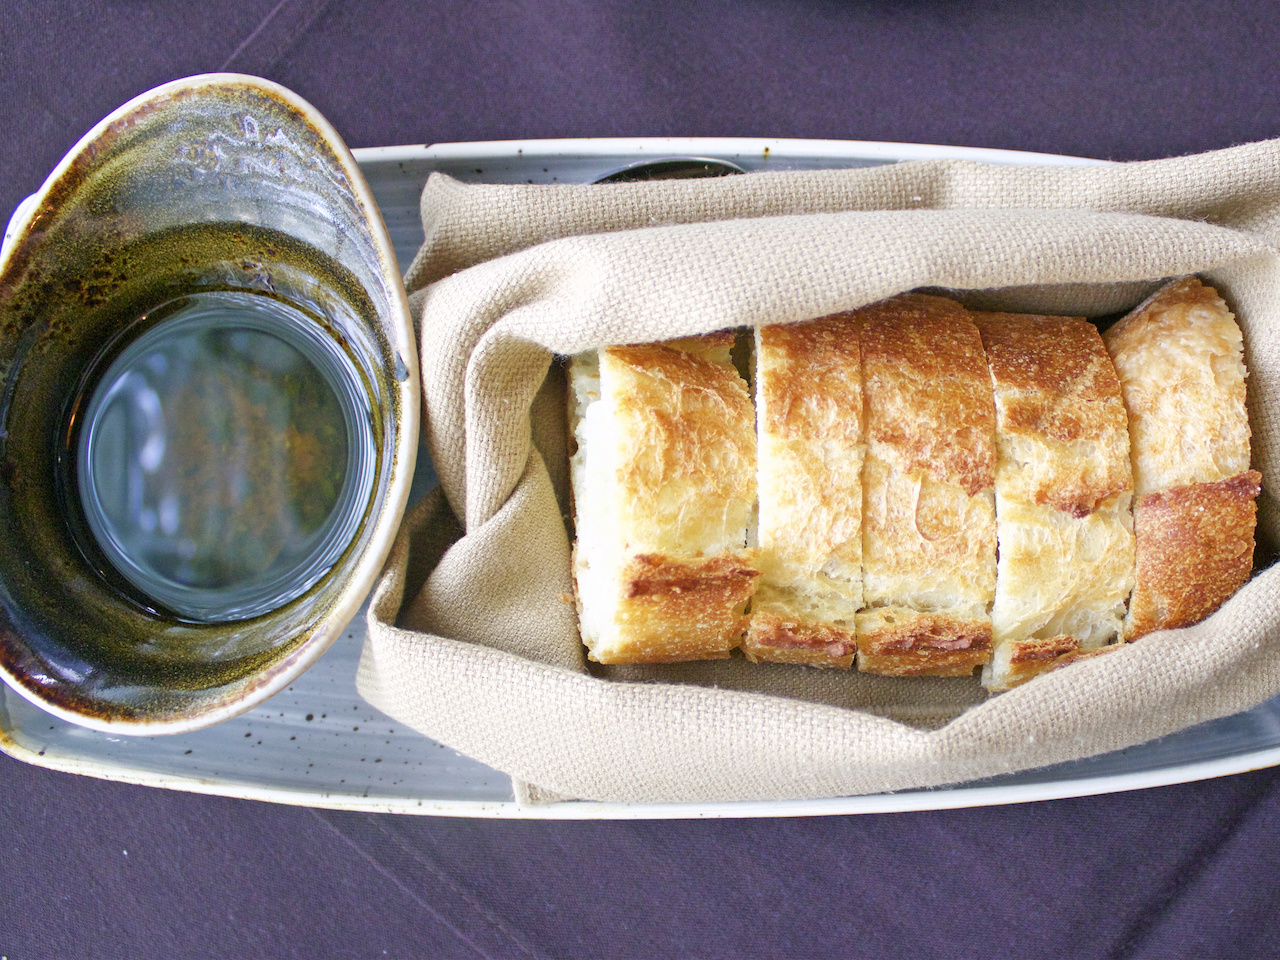 You know you're off to a good start when your meal begins with warm-from-the-oven Blue Dog br.jpg